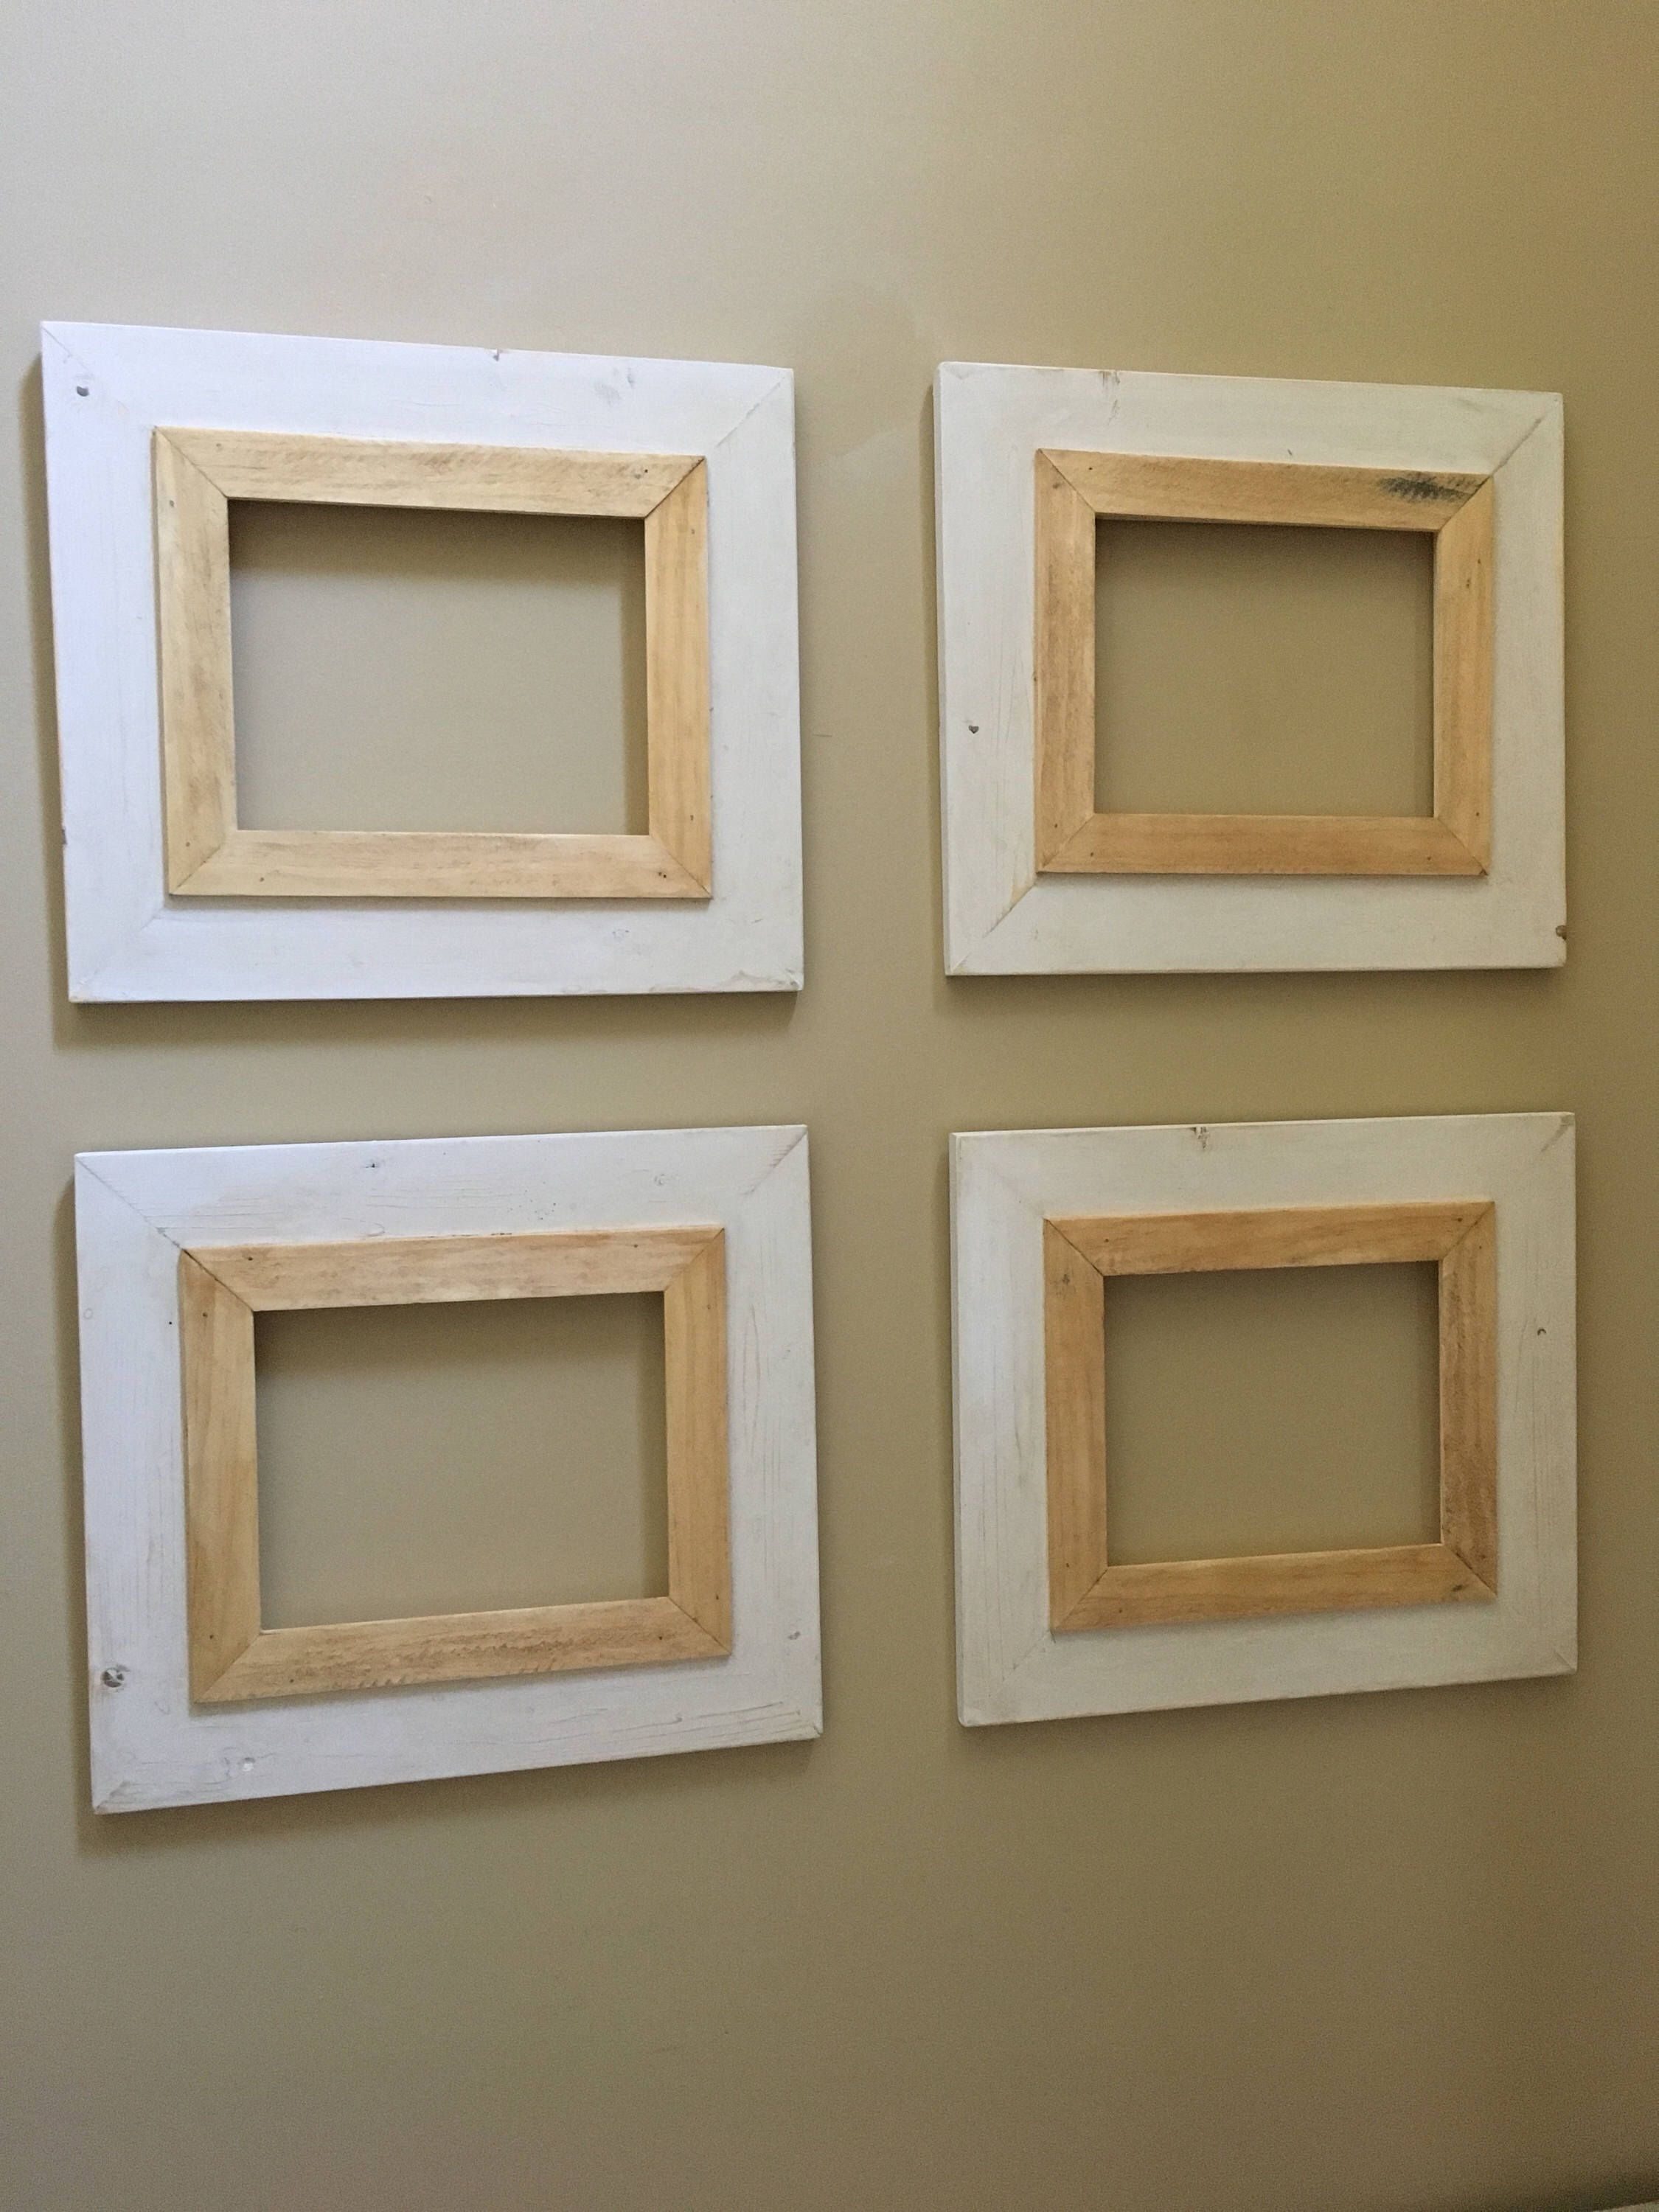 Grouping of 4 8x10 Picture Frames   8x10 picture frames